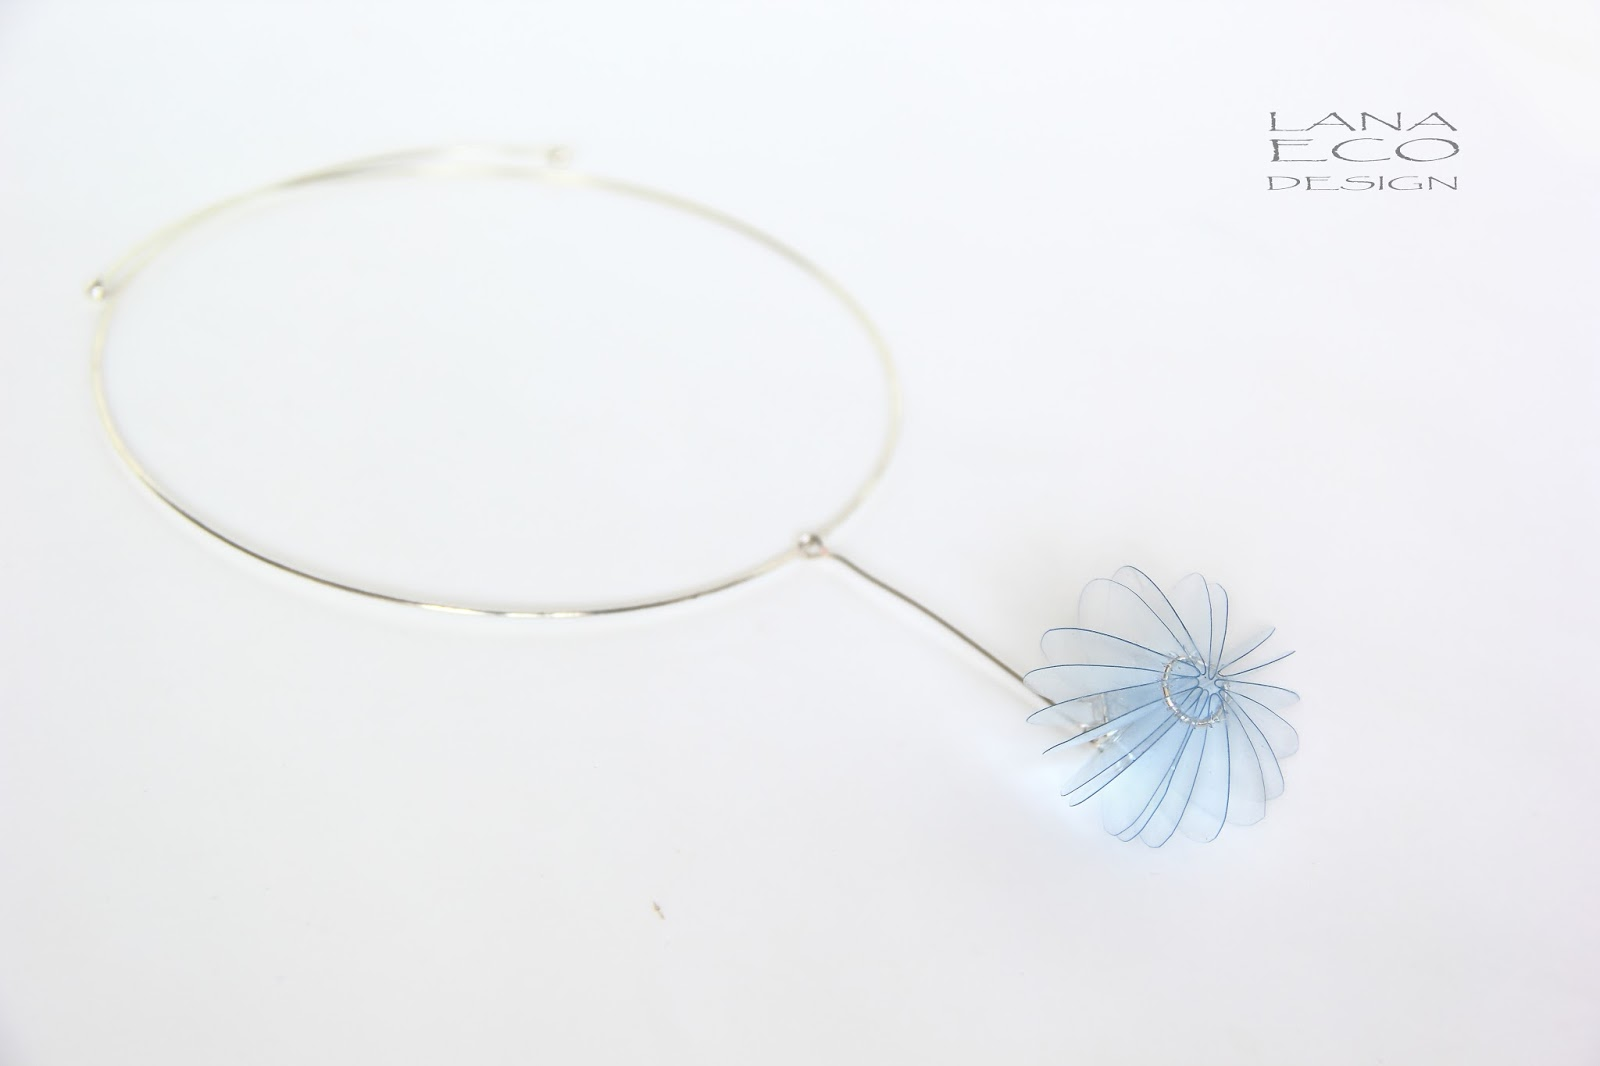 gioiello-contemporaneo-riciclo-creativo-design-creative recycling-plastica-riciclata-eco-contemporary-jewellery